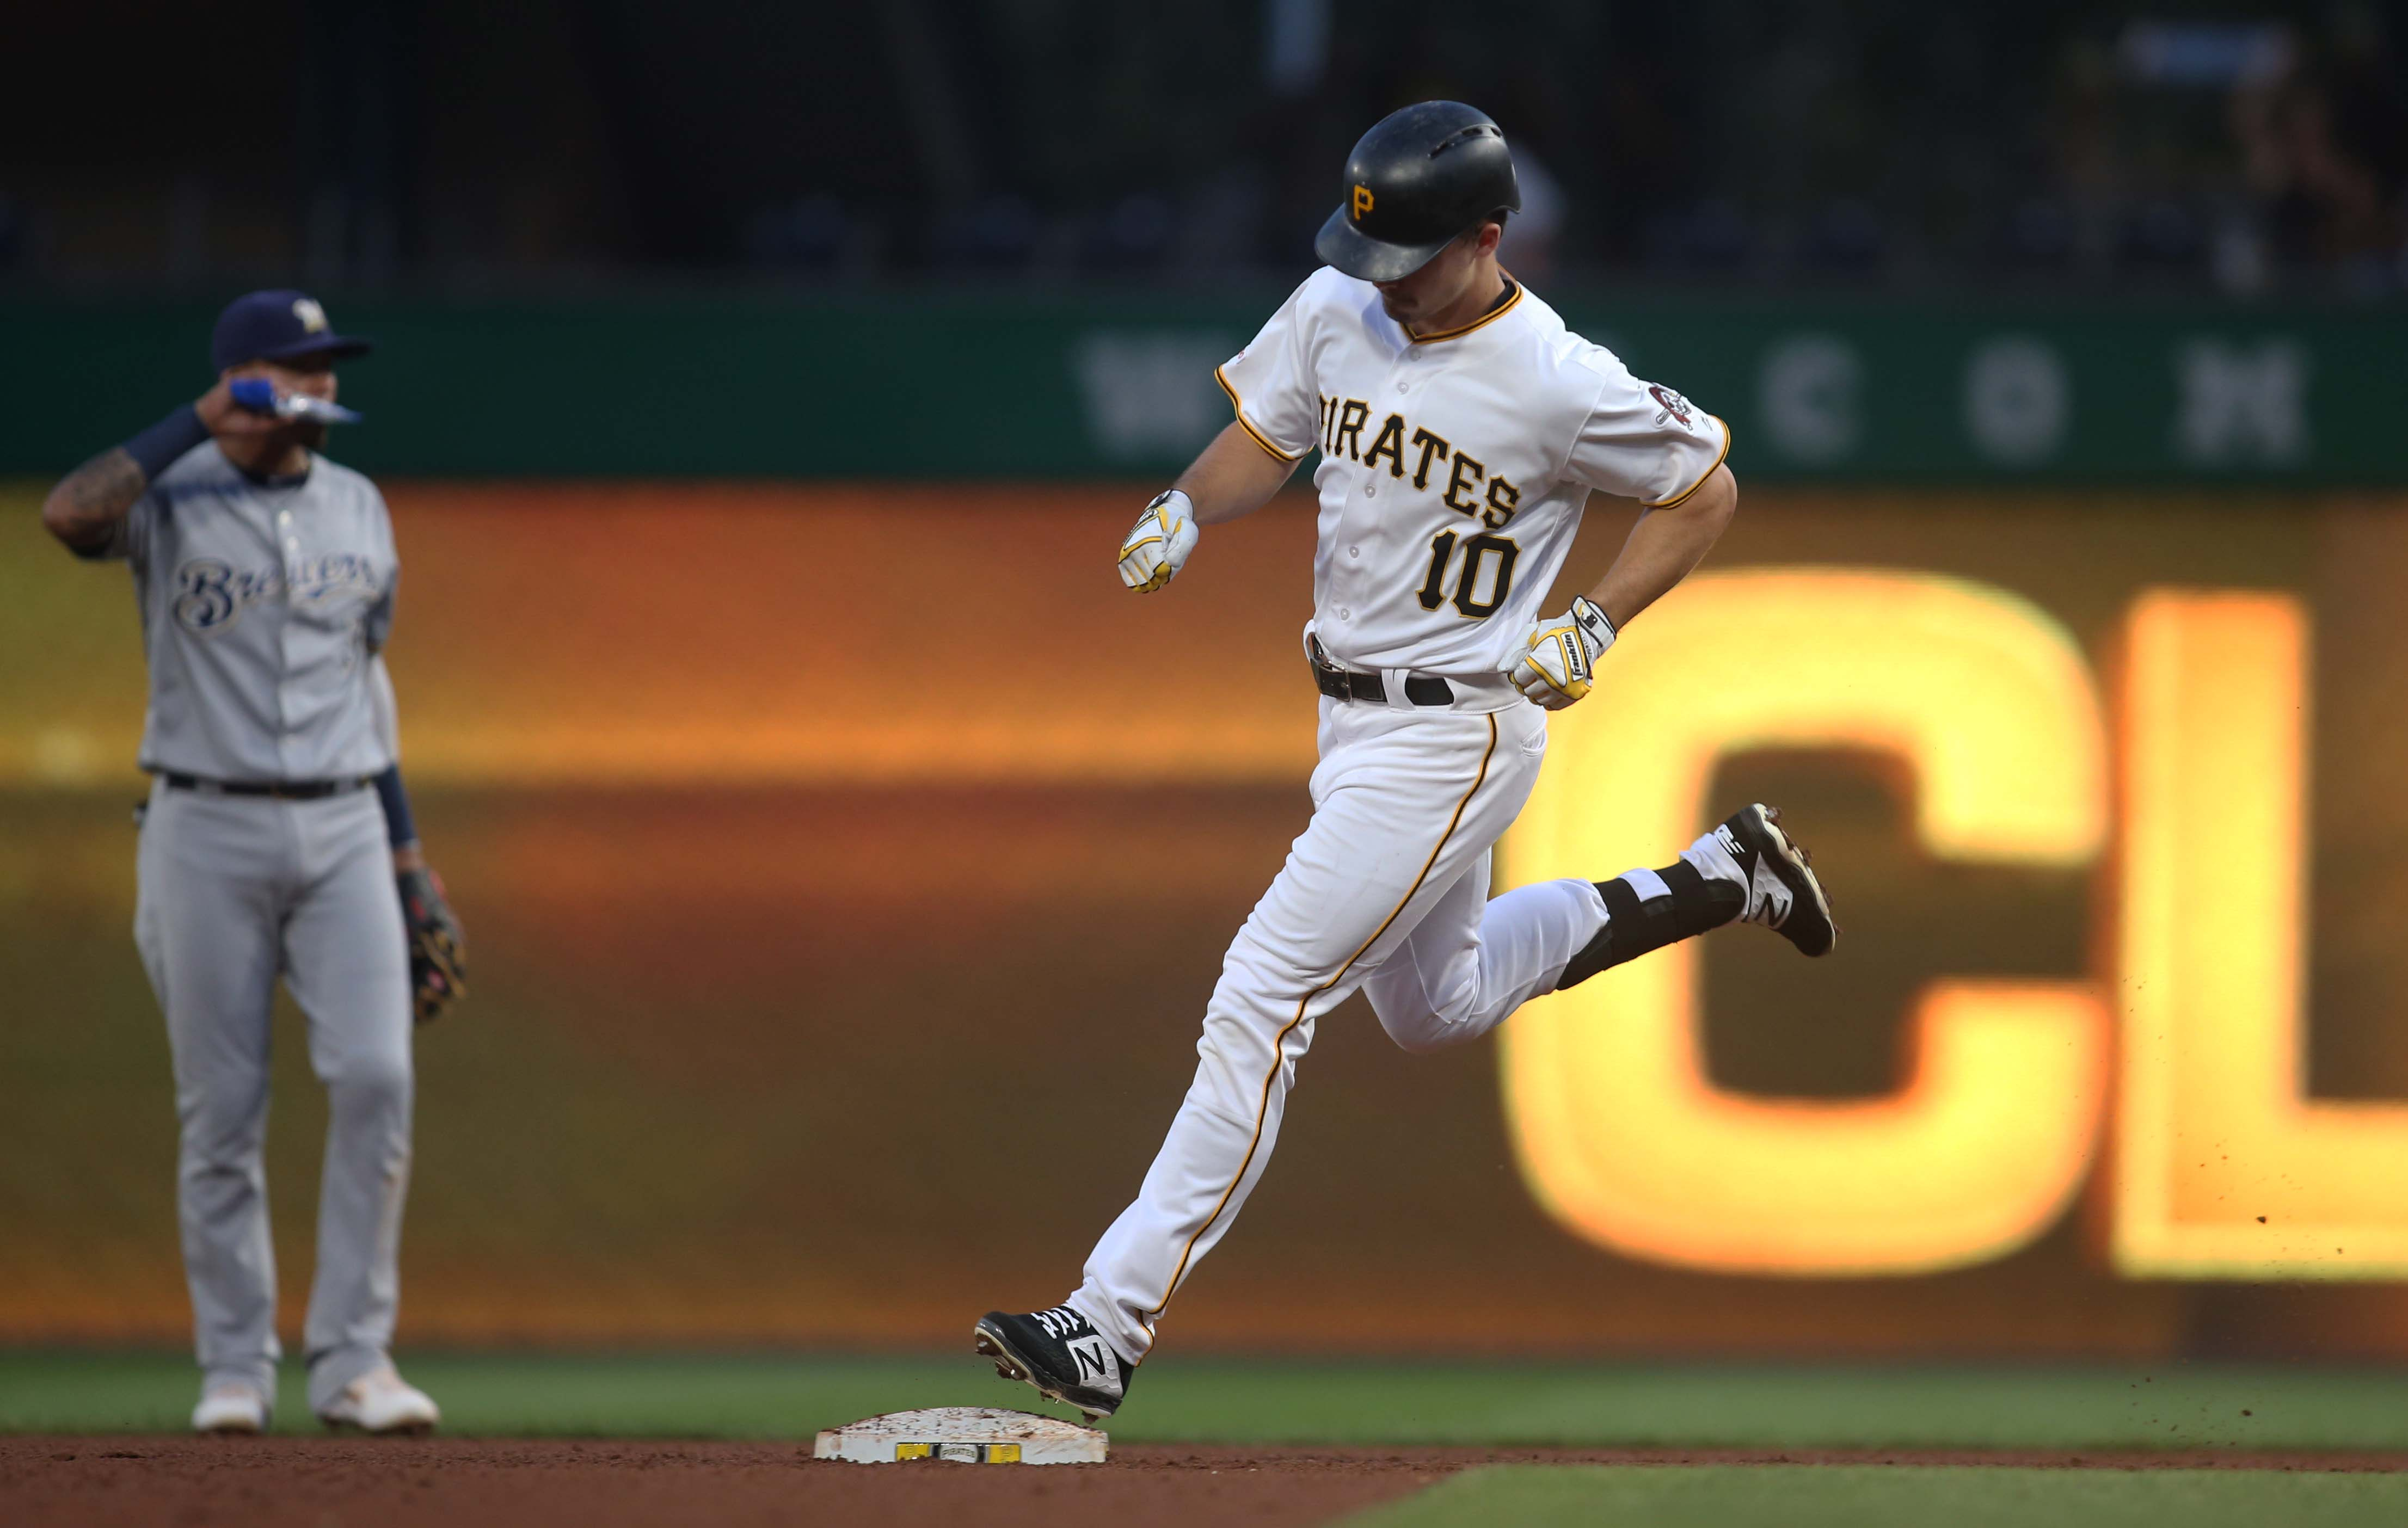 Pirates Schedule July 2020 Pirates 2020 Schedule Released; Yanks, Red Sox Coming To